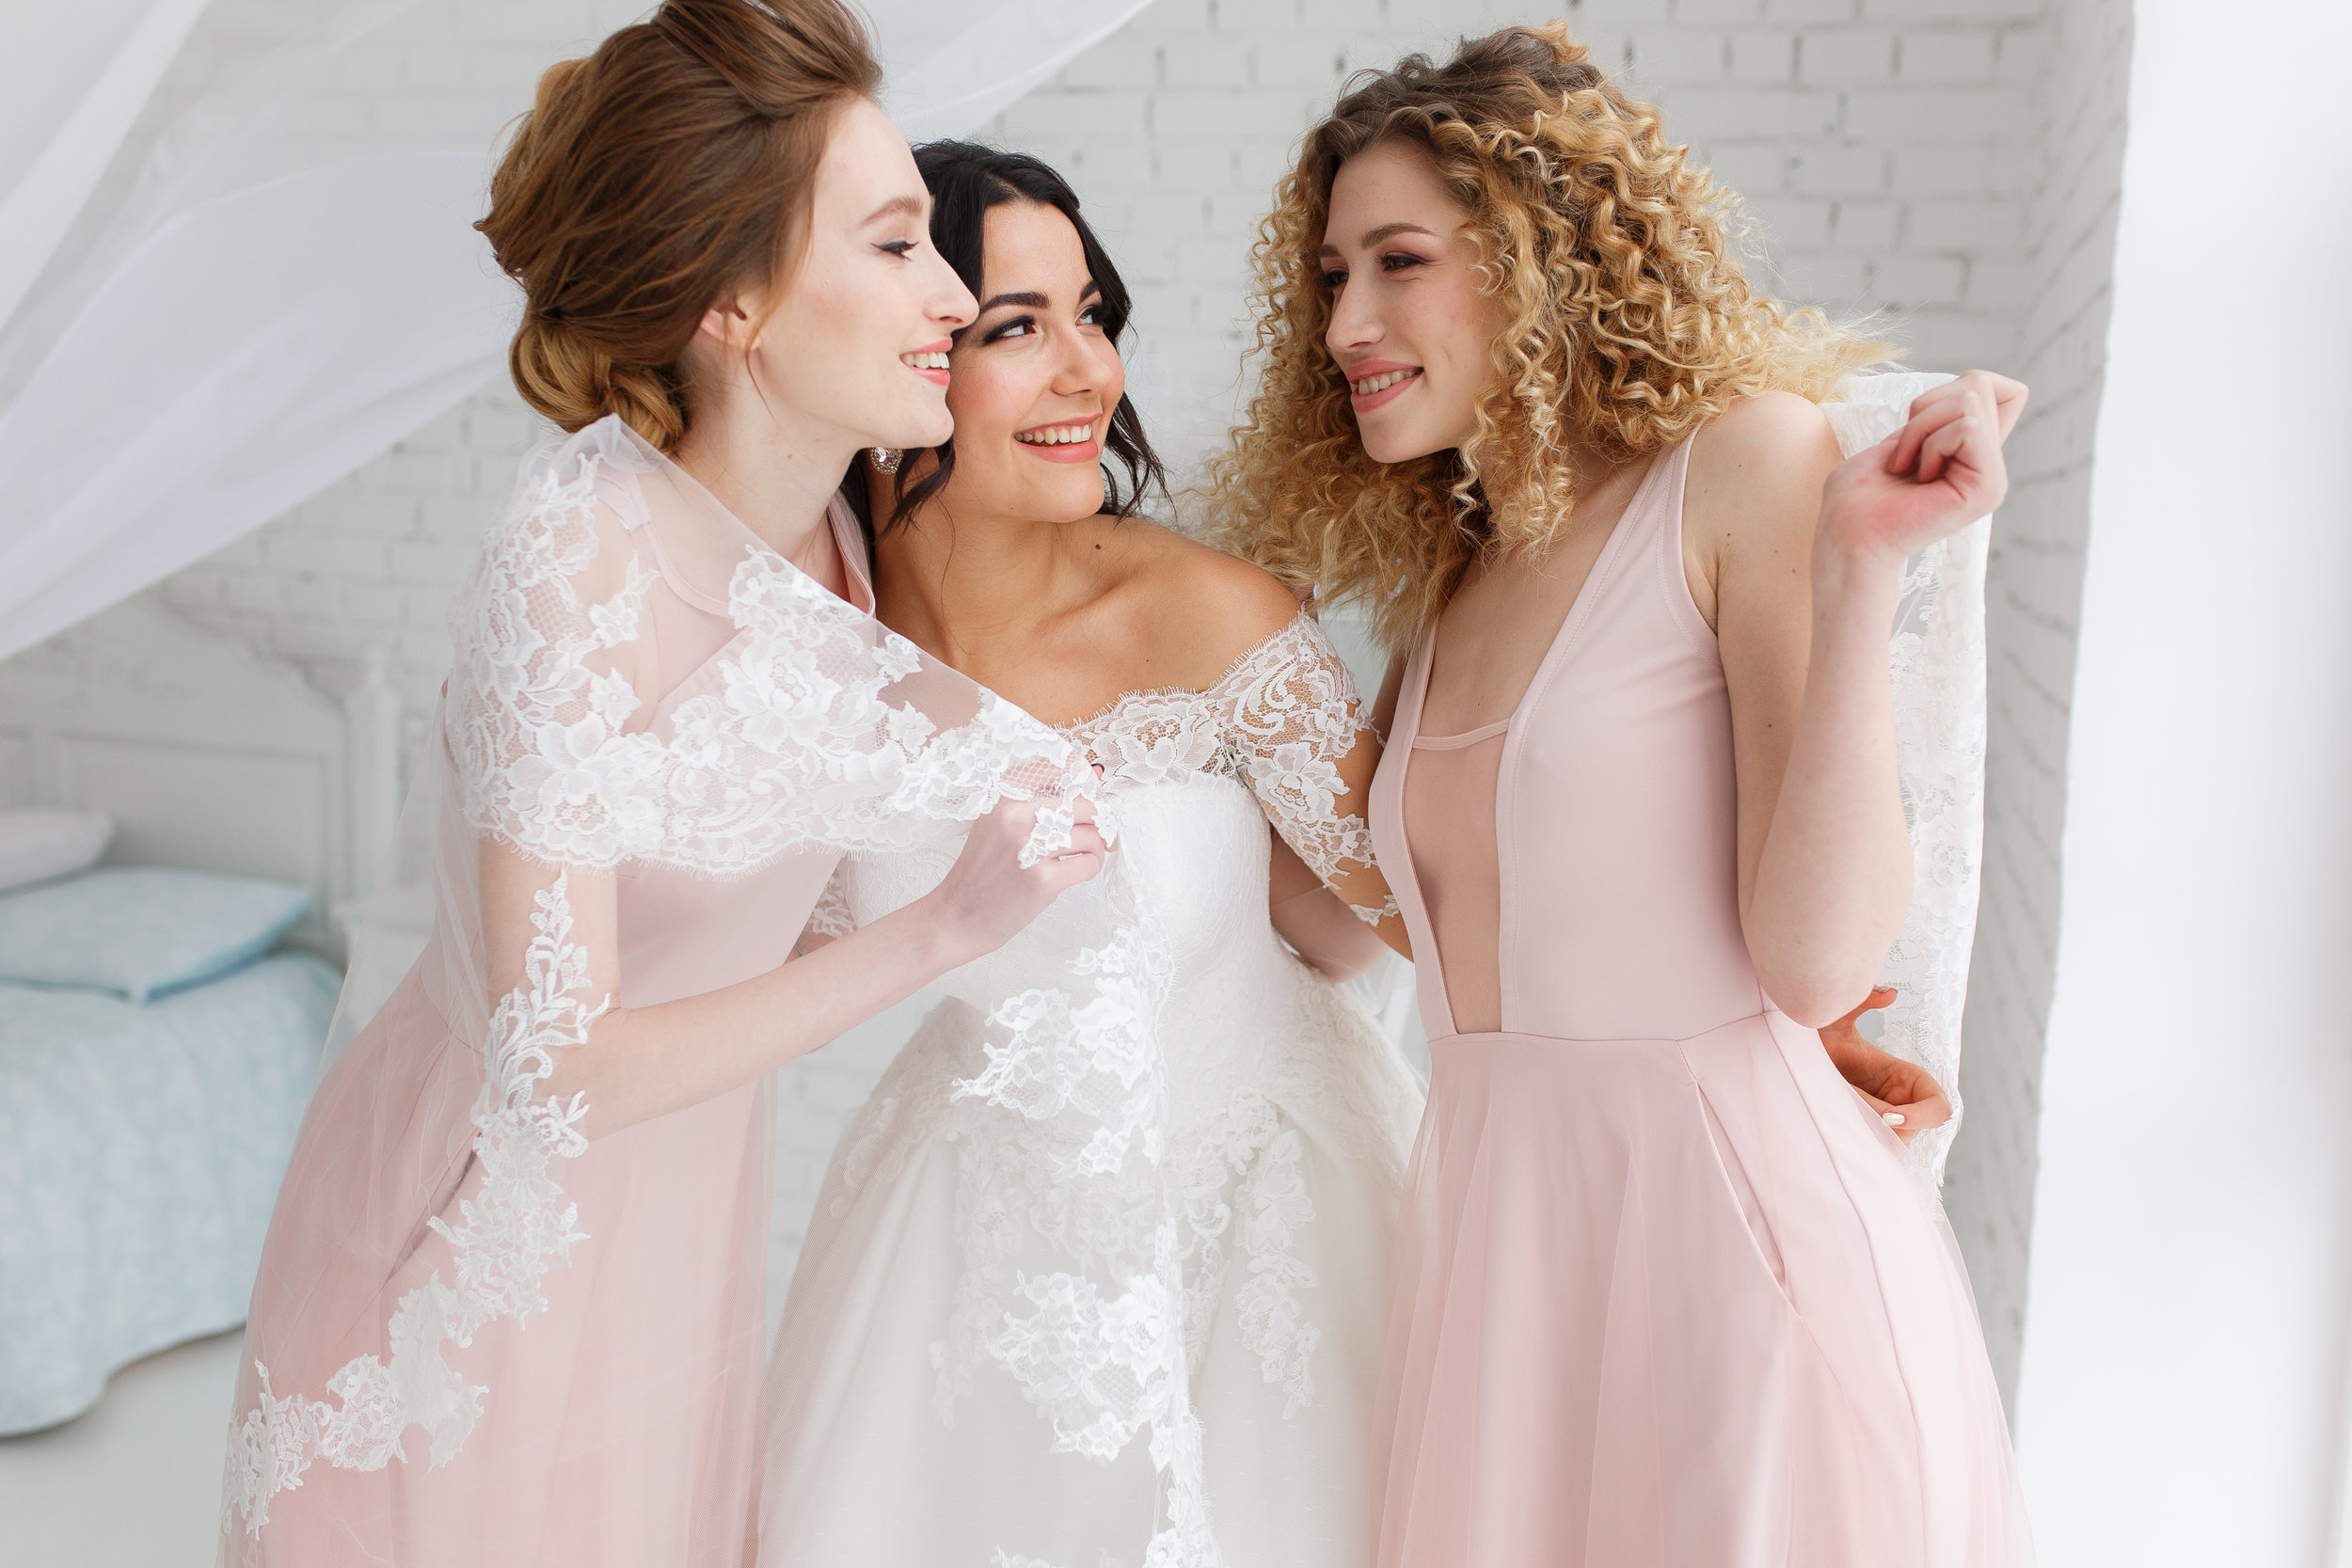 Bliss Bridal Packages - for you and your wedding party